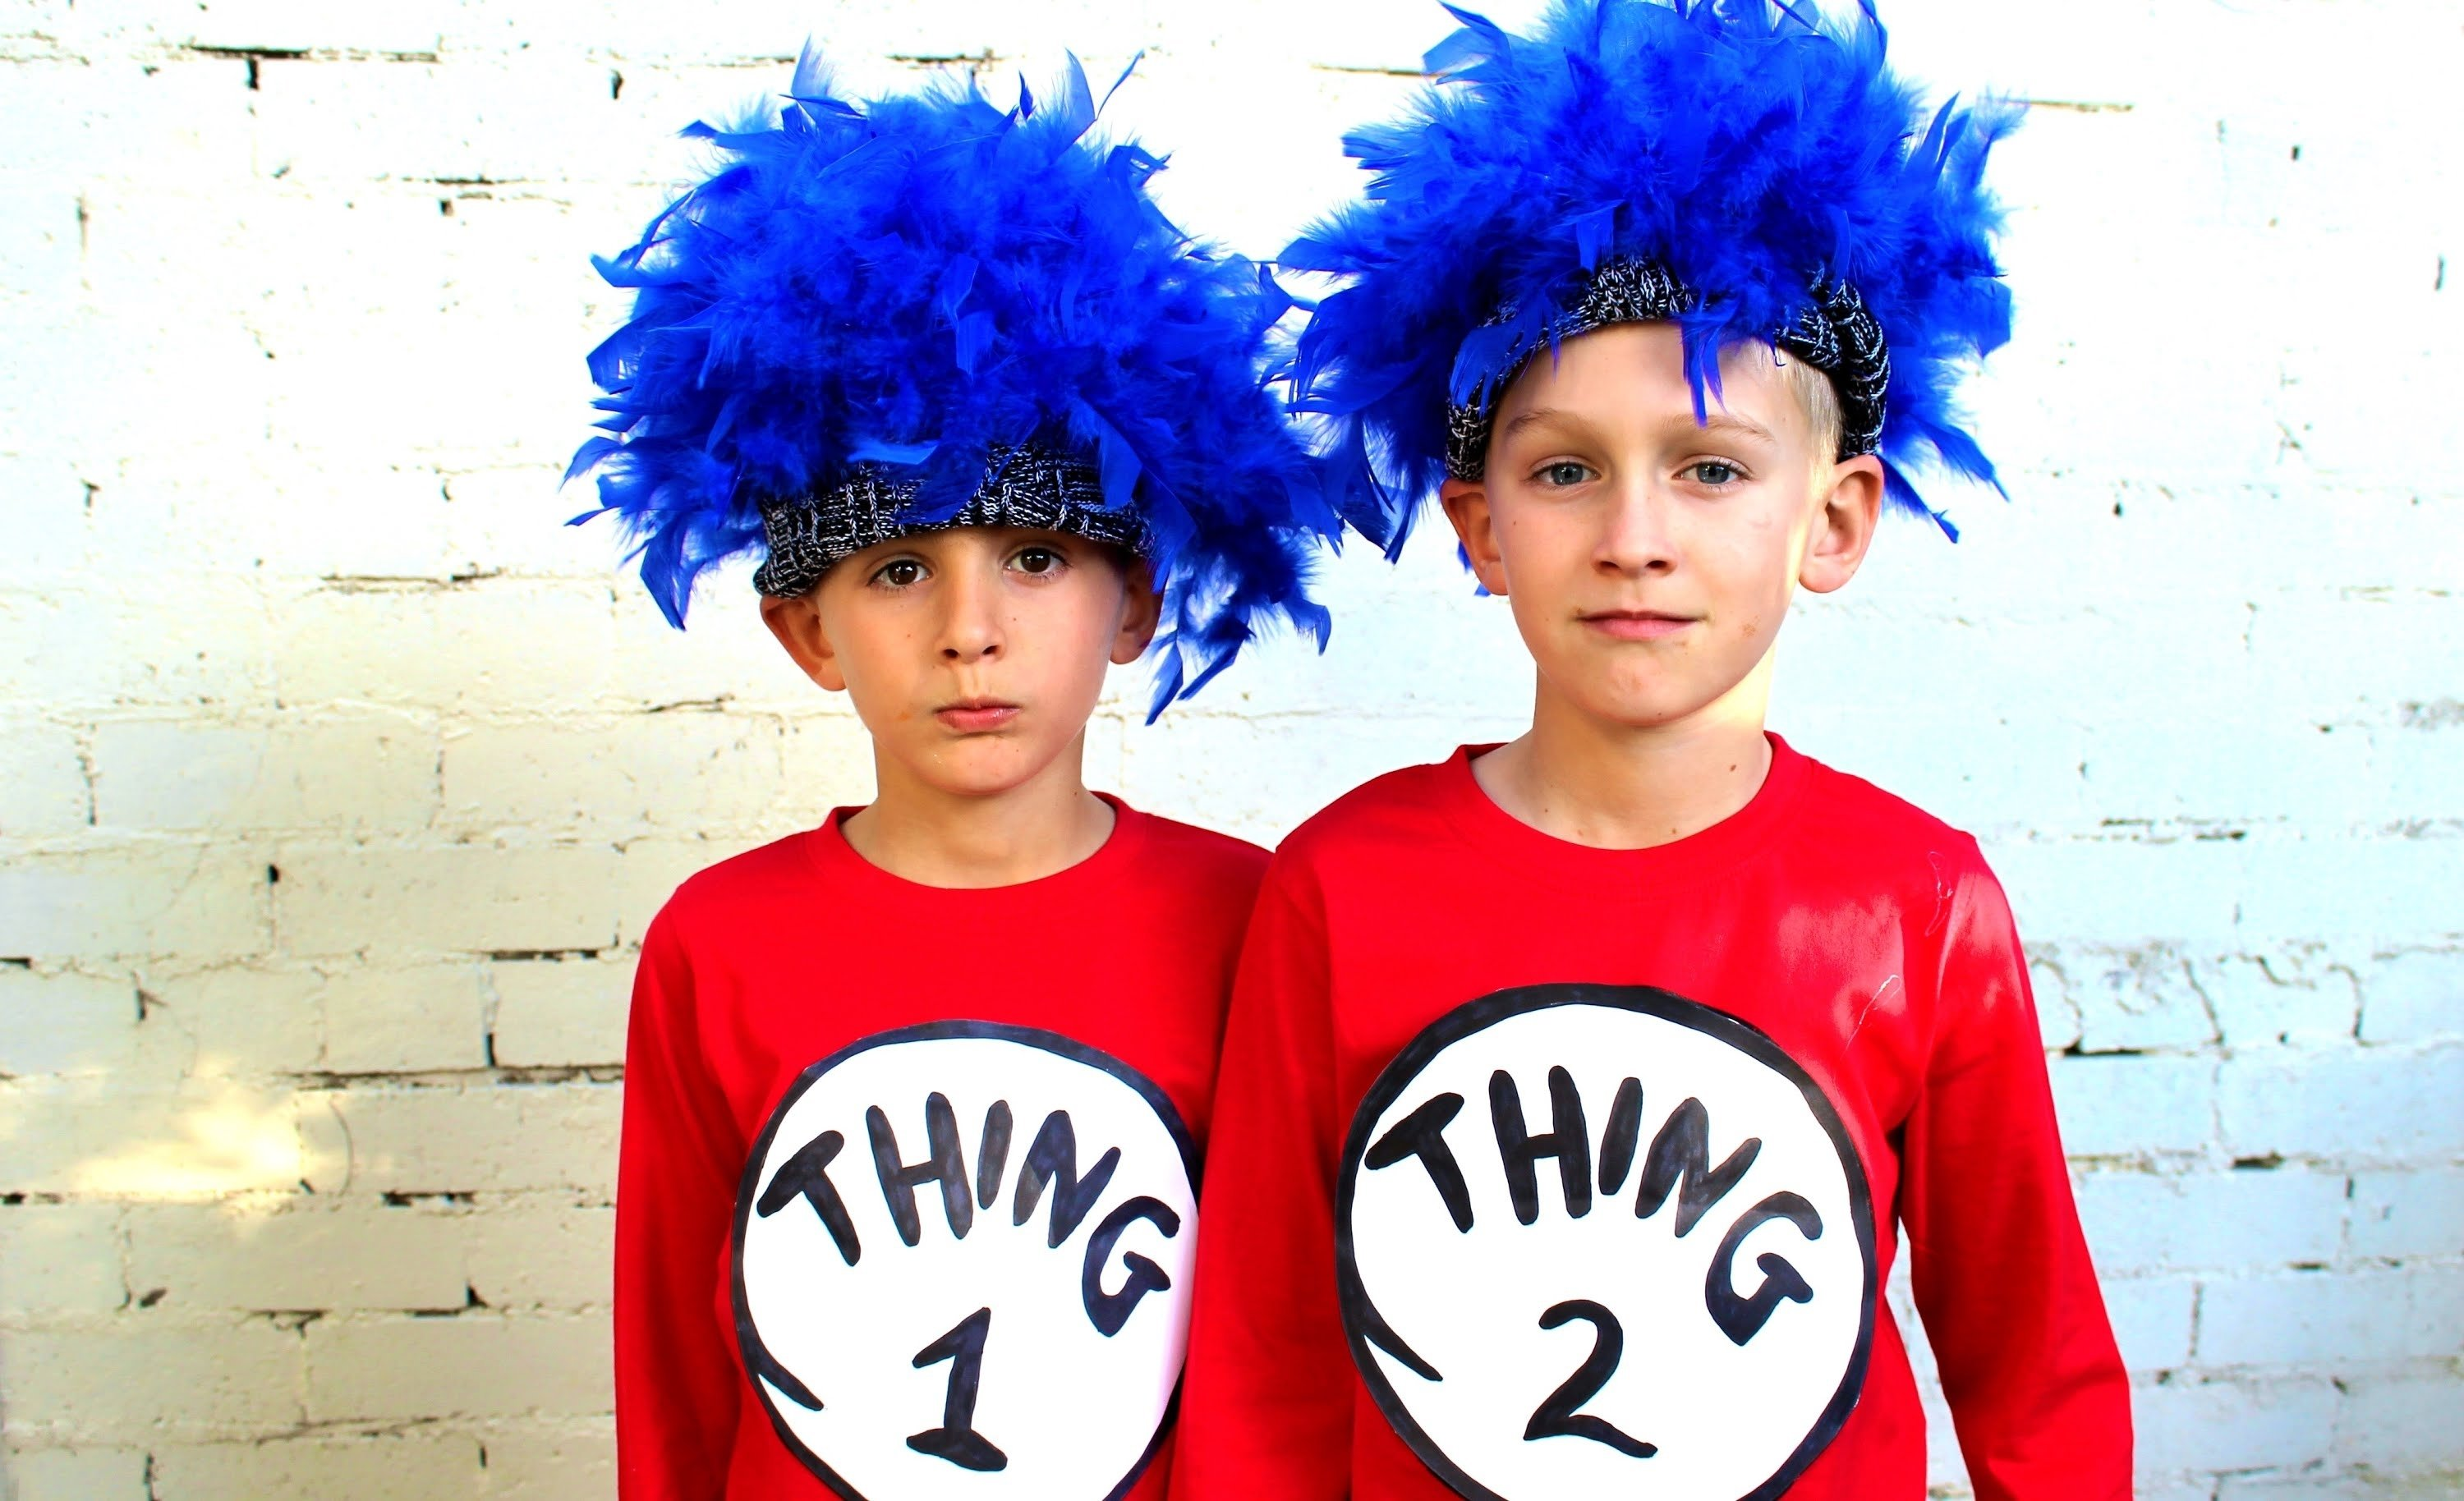 10 Unique Thing 1 And Thing 2 Costume Ideas how to make thing 1 and thing 2 dress ups youtube 2021